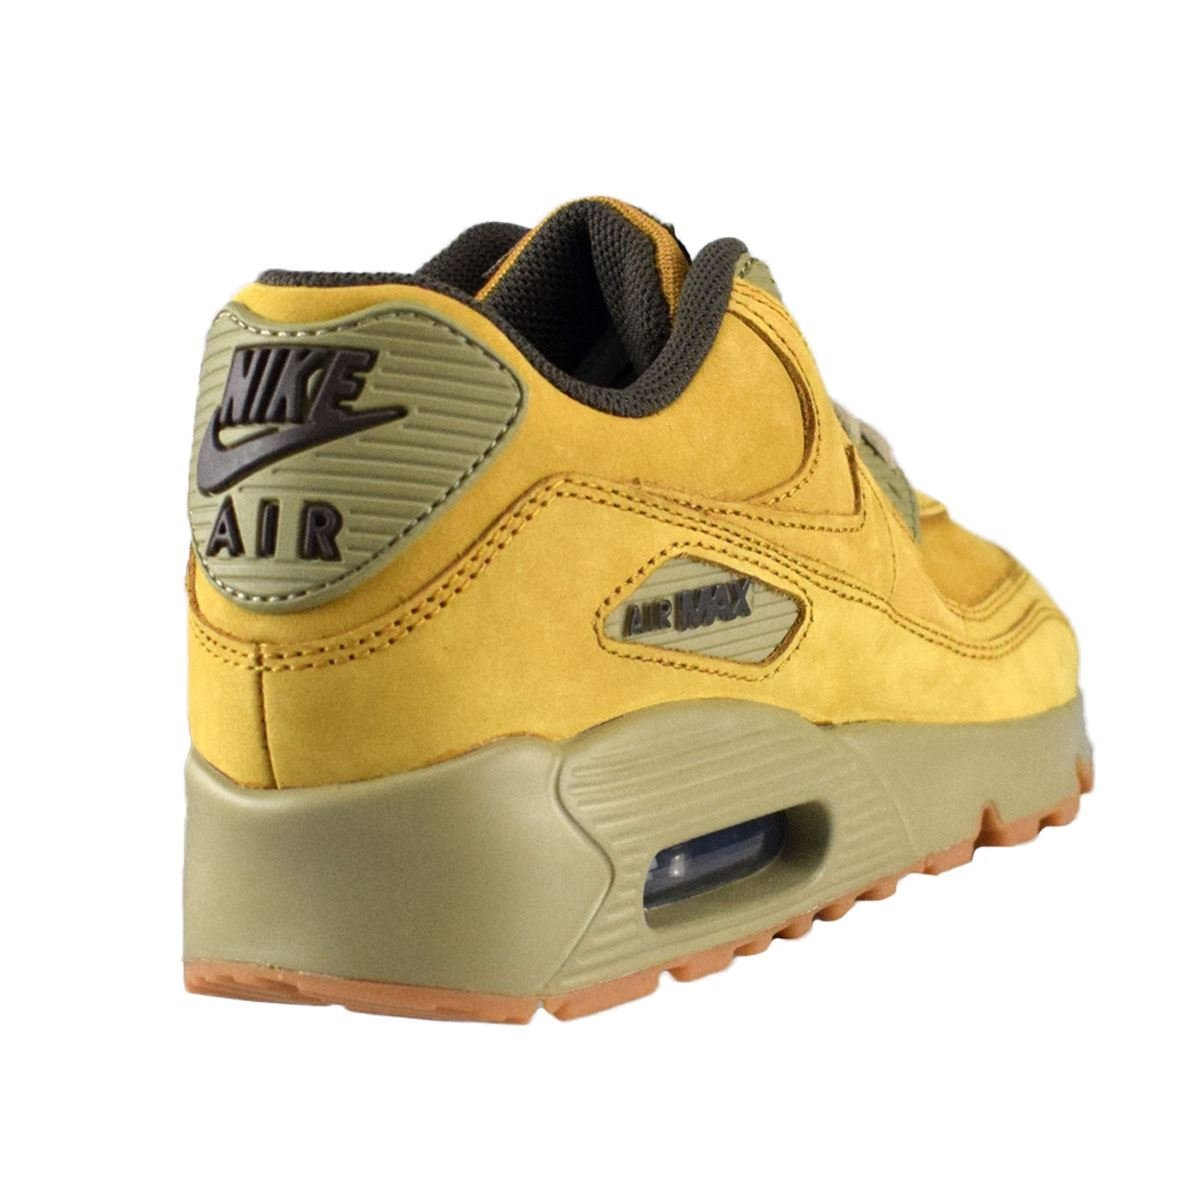 a4bb2092c6 Amazon.com | Nike Youth Air Max 90 Winter Leather Trainers Yellow | Sneakers